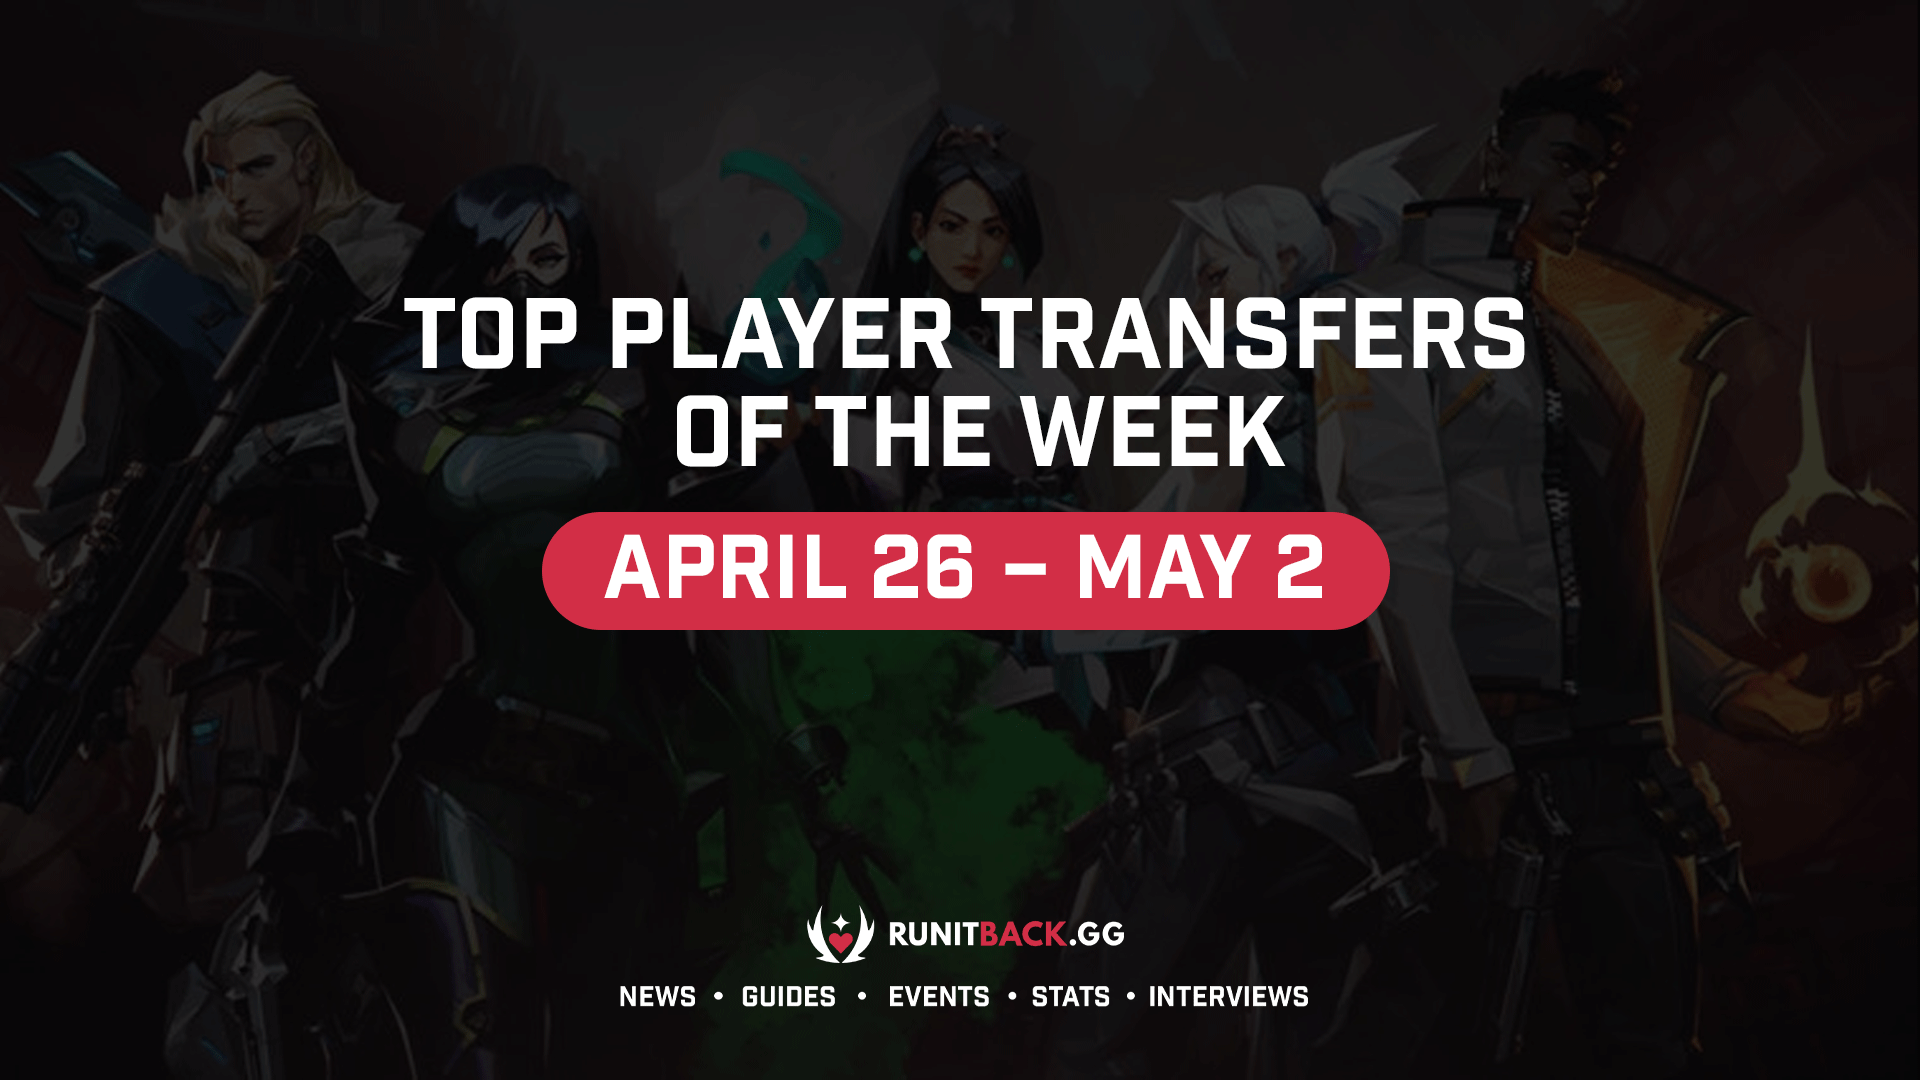 Top Player Transfers of the Week: April 26 – May 2